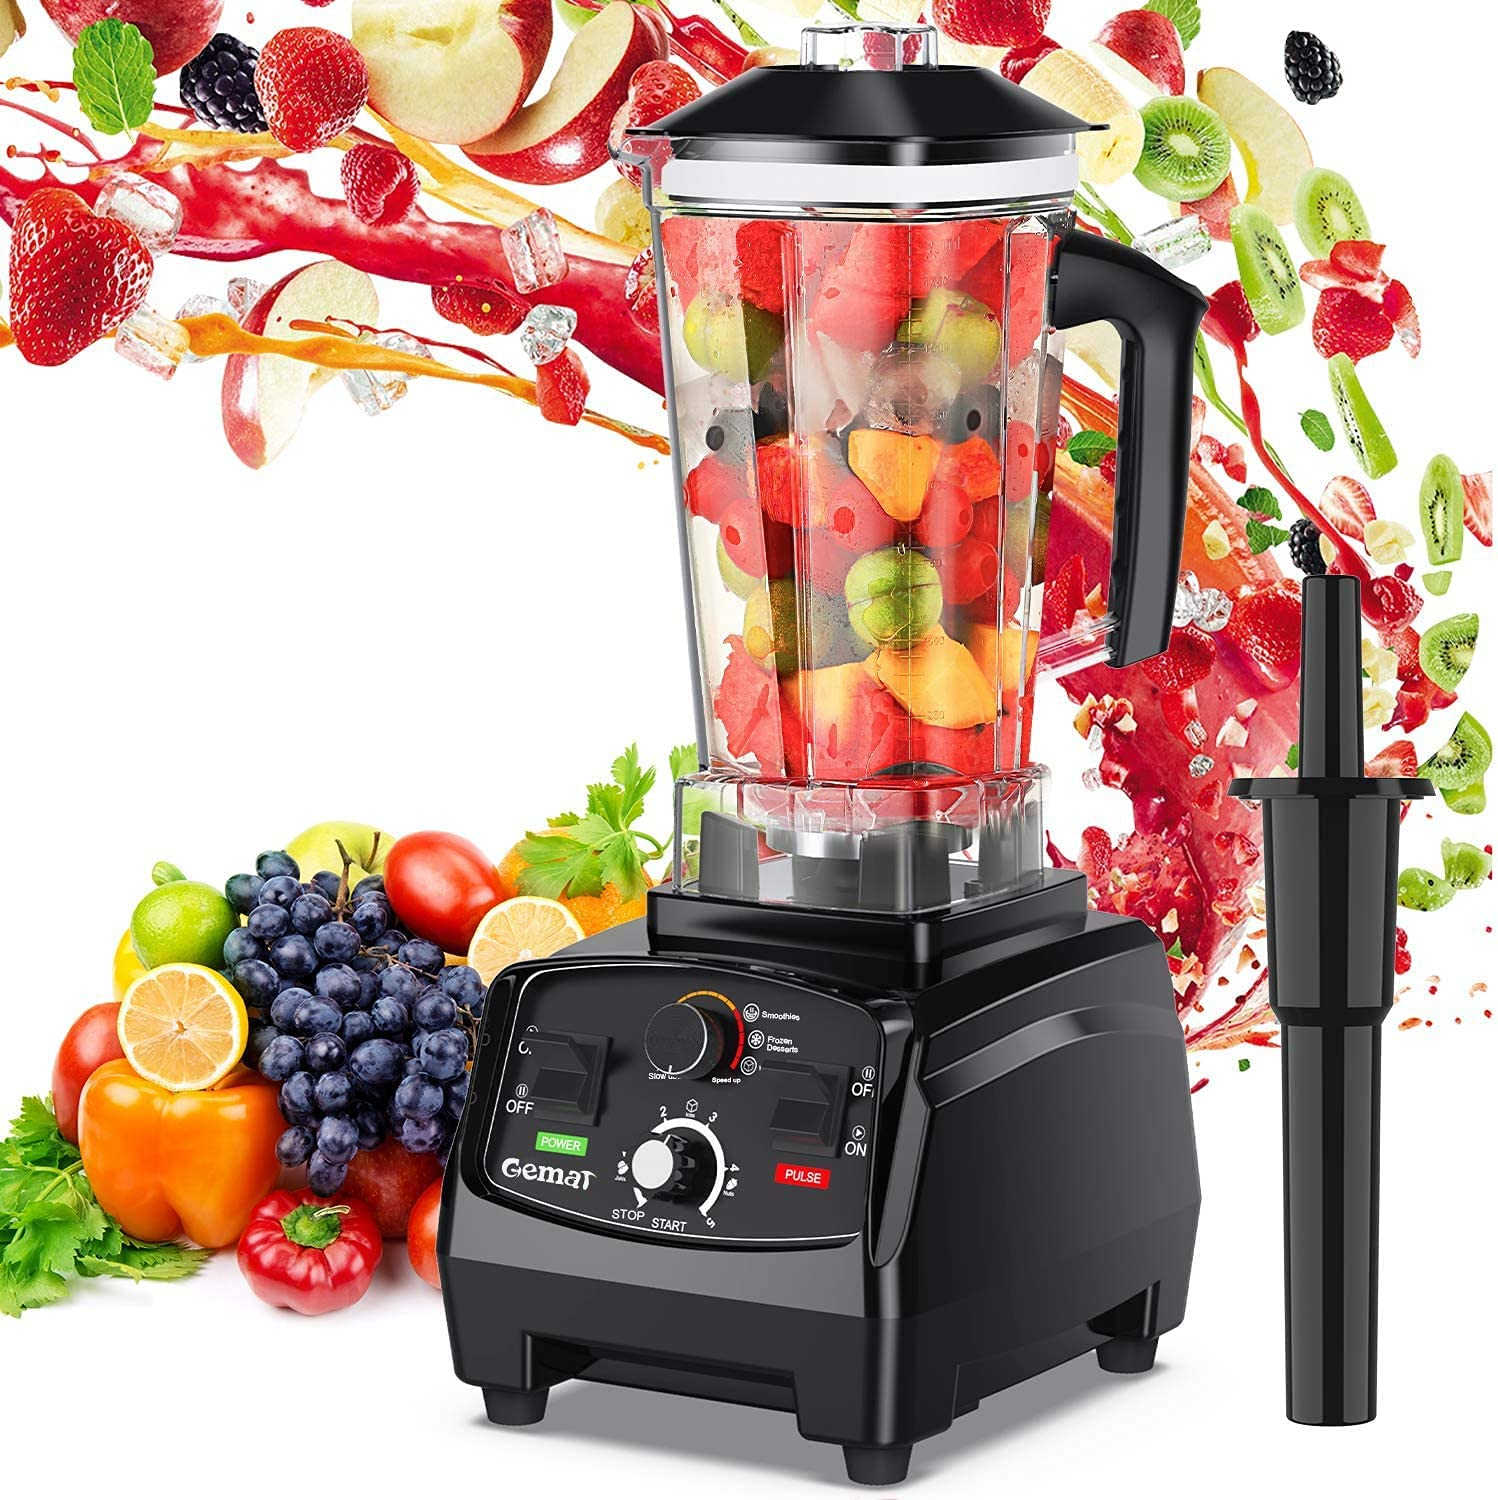 GEMAT Professional Countertop Blender with 2200-Watt Base, Smoothie Blender ,Built-in Timer ,High Power Blender 2L Cups for Frozen Drinks ,Shakes and Smoothies